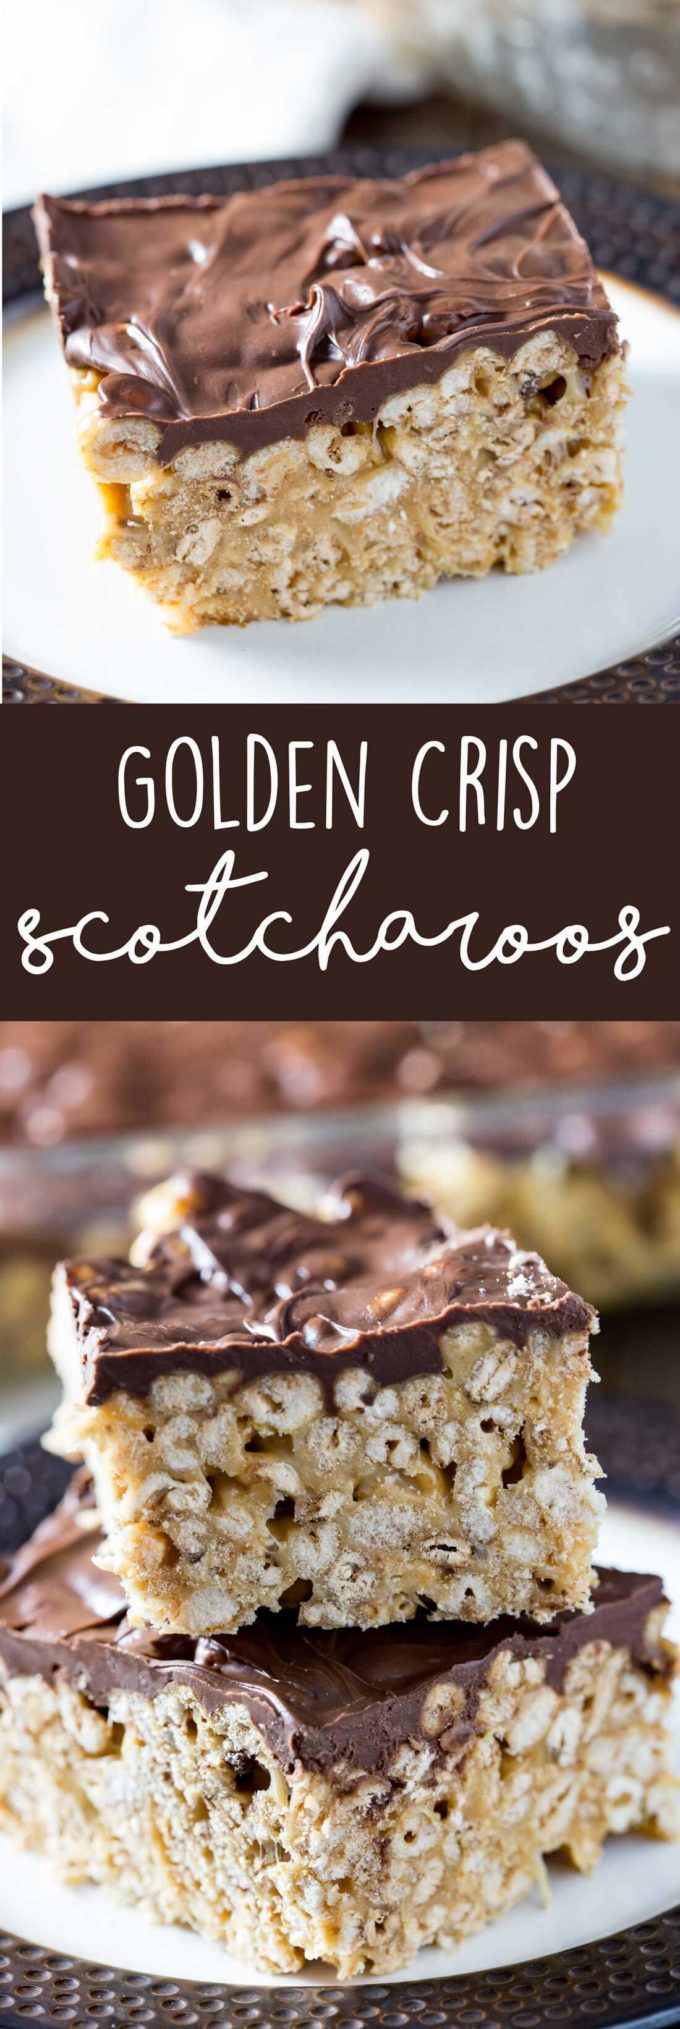 Golden Crisp® Scotcharoos: This is a gooey marshmallow-y, chocolate and peanut butter, cereal bar, with everything you want in a delicious treat.